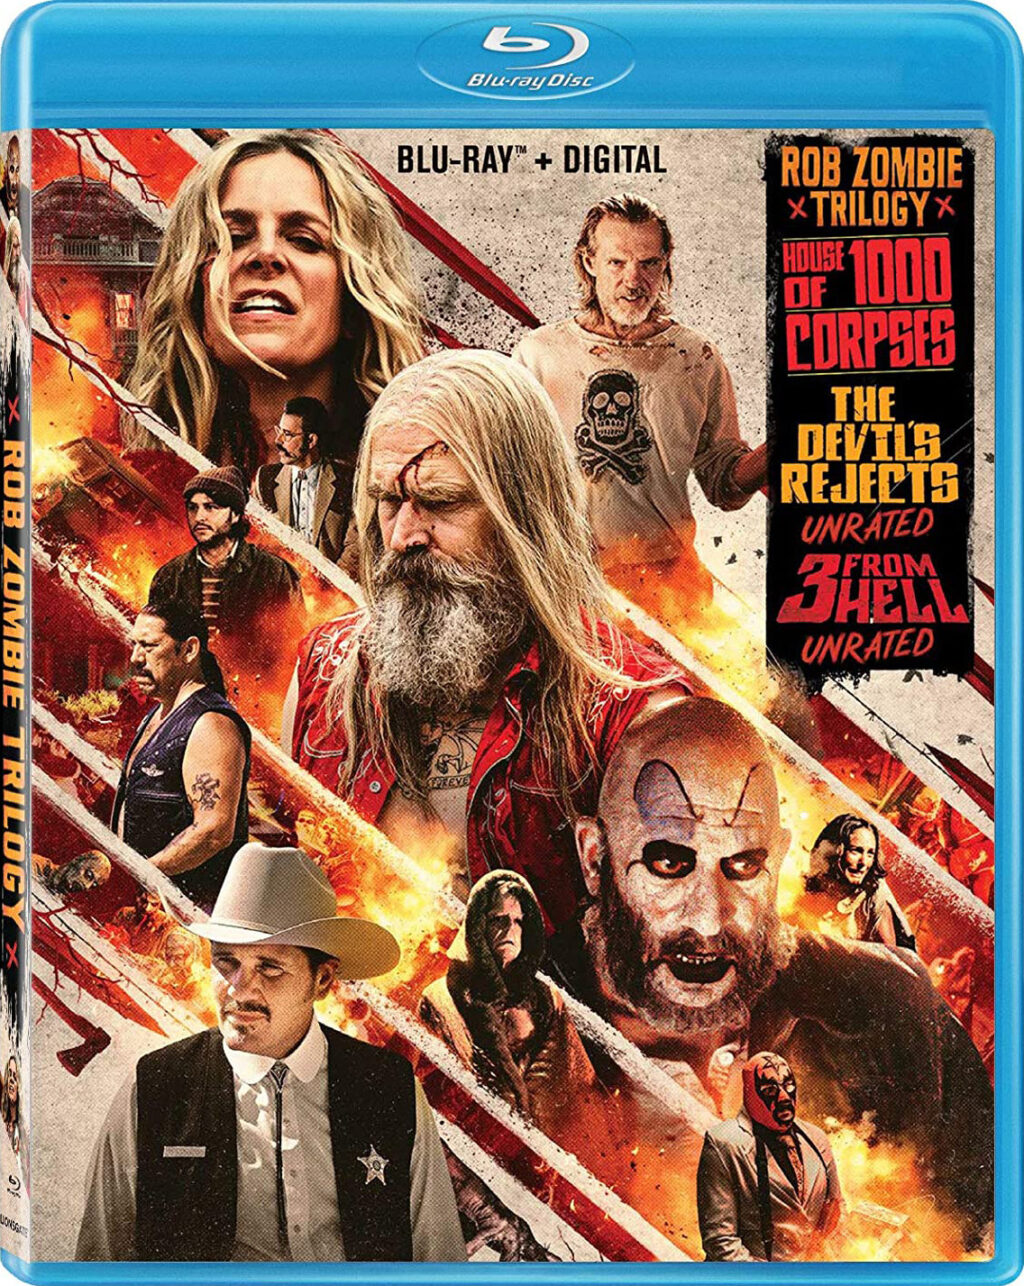 Rob Zombie House of 1000 Corpses The Devil's Rejects 3 from Hell Blu ray 1024x1286 - Rob Zombie's FIREFLY TRILOGY Hits Blu-ray 9/22